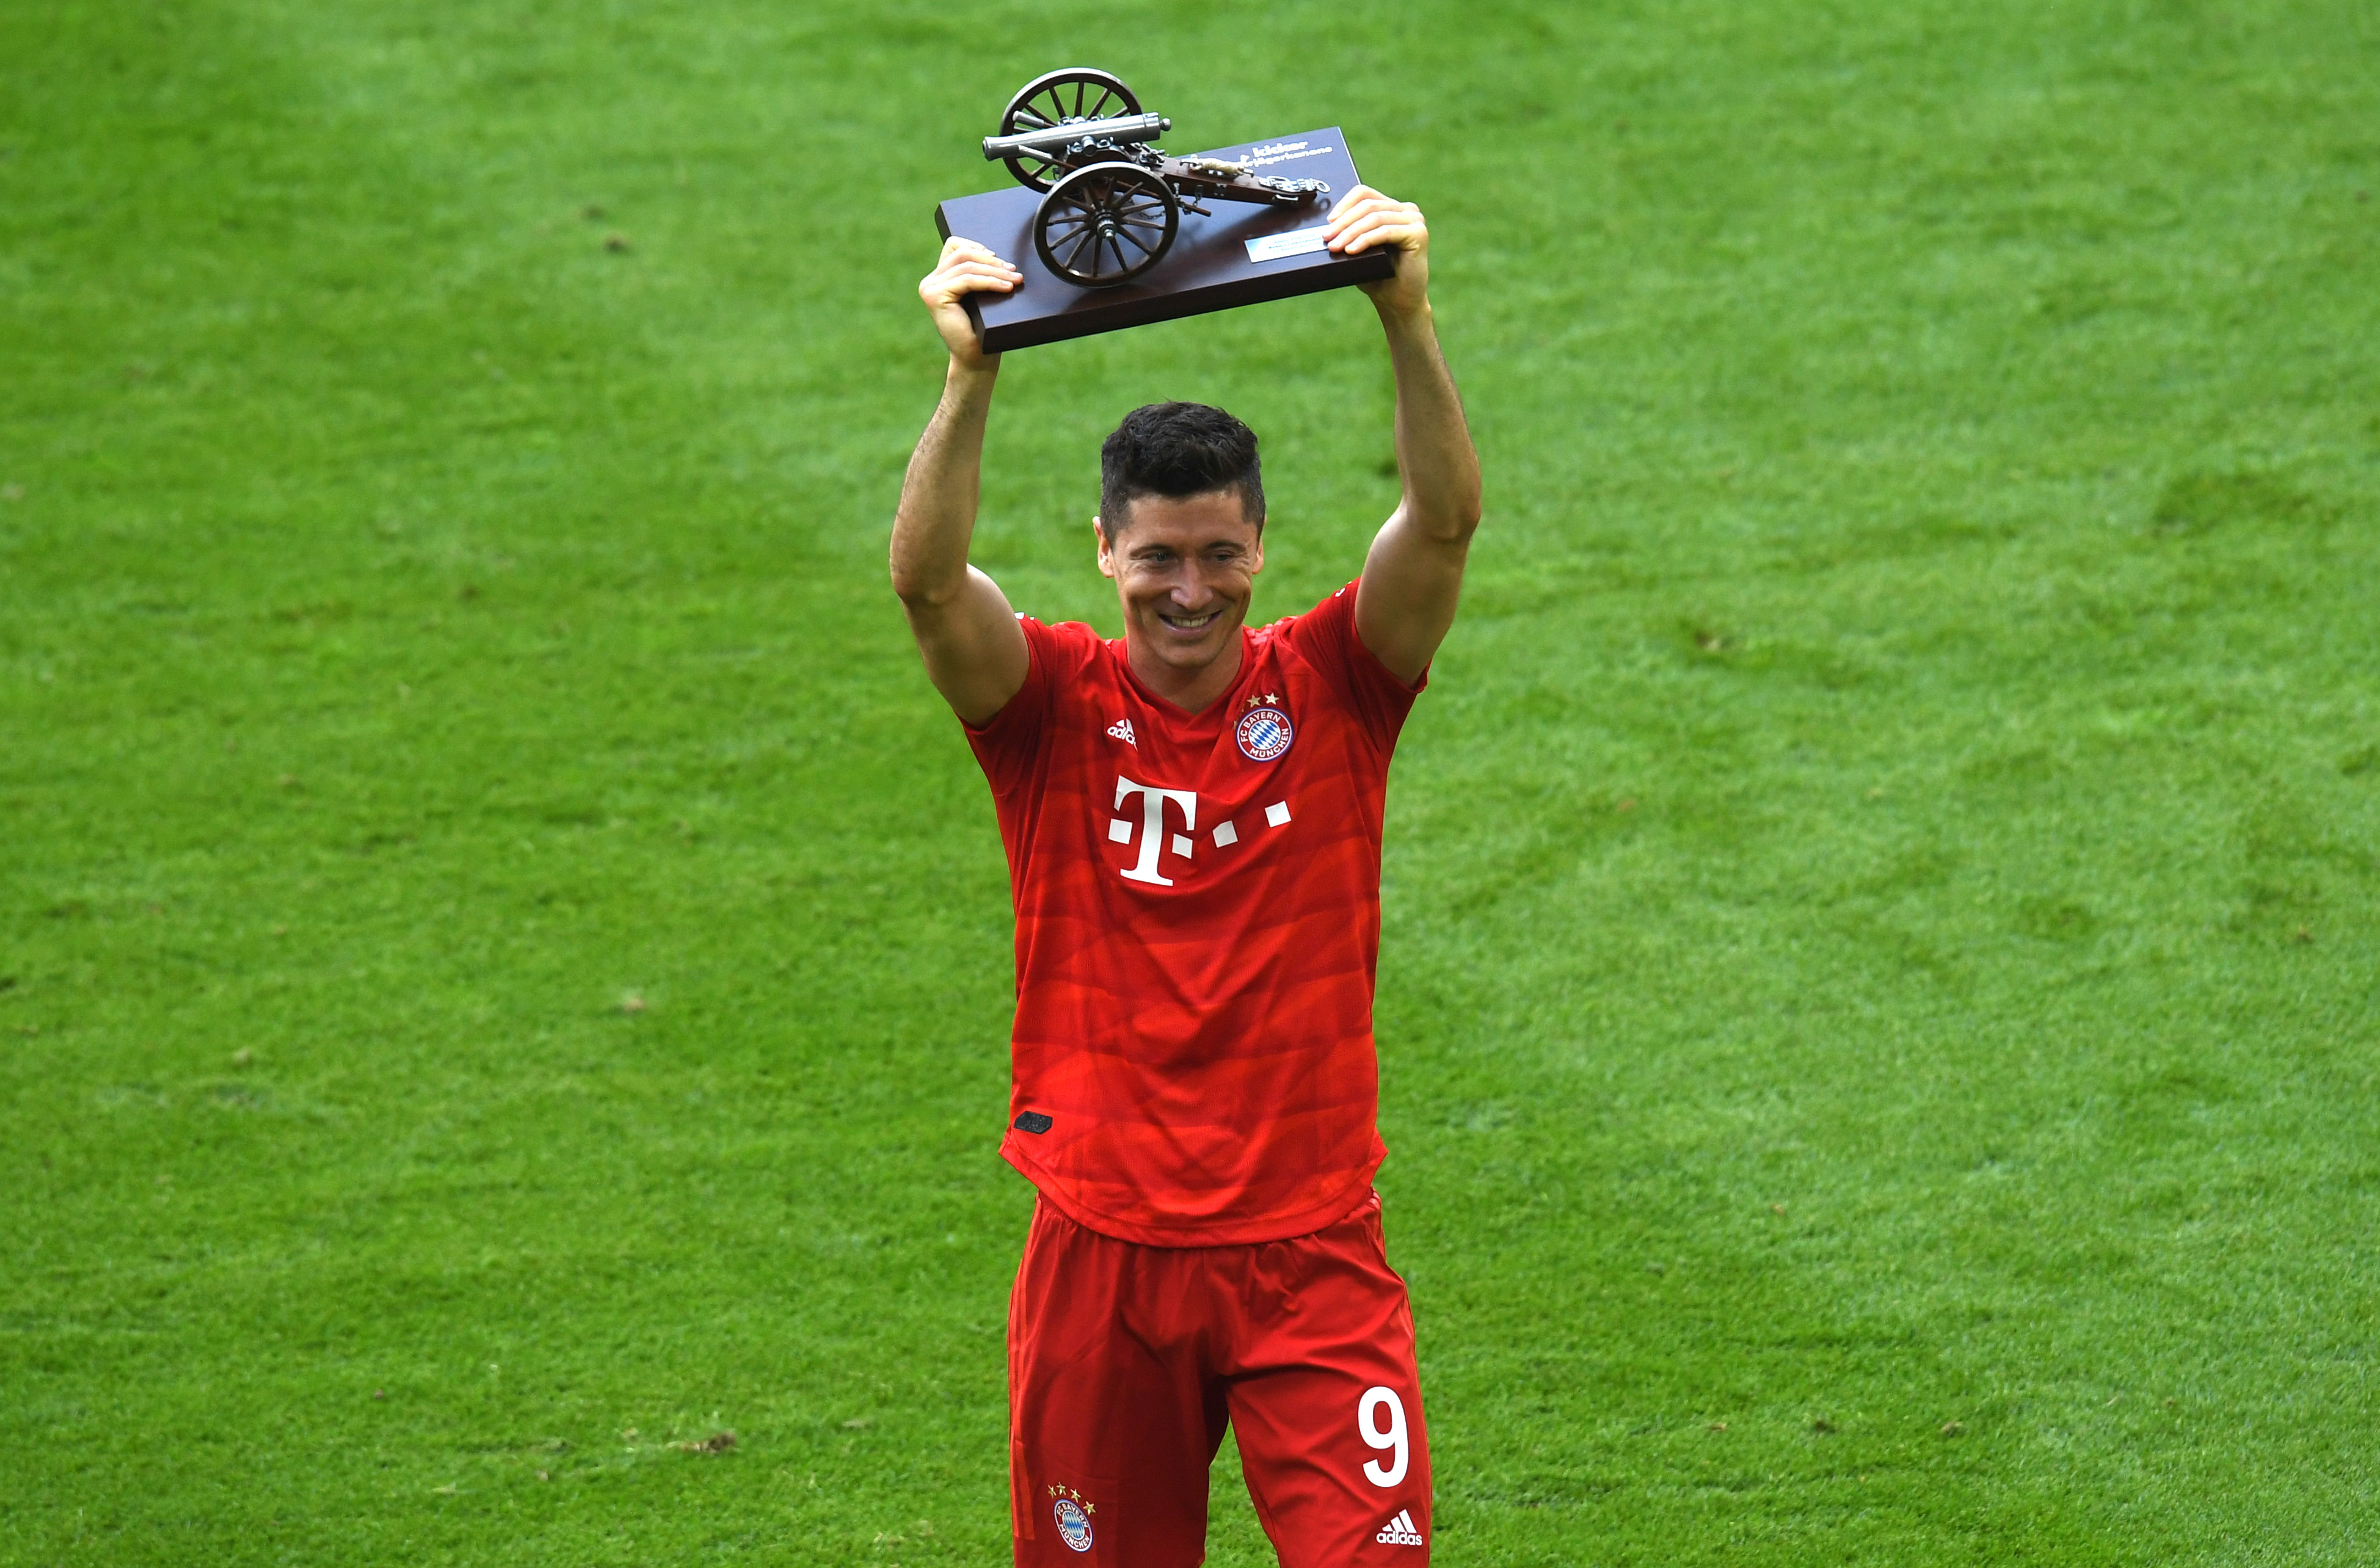 Robert Lewandowski: Bayern's very own Polish goal machine. (Photo by Christof STACHE / AFP) / DFL REGULATIONS PROHIBIT ANY USE OF PHOTOGRAPHS AS IMAGE SEQUENCES AND/OR QUASI-VIDEO (Photo credit should read CHRISTOF STACHE/AFP/Getty Images)